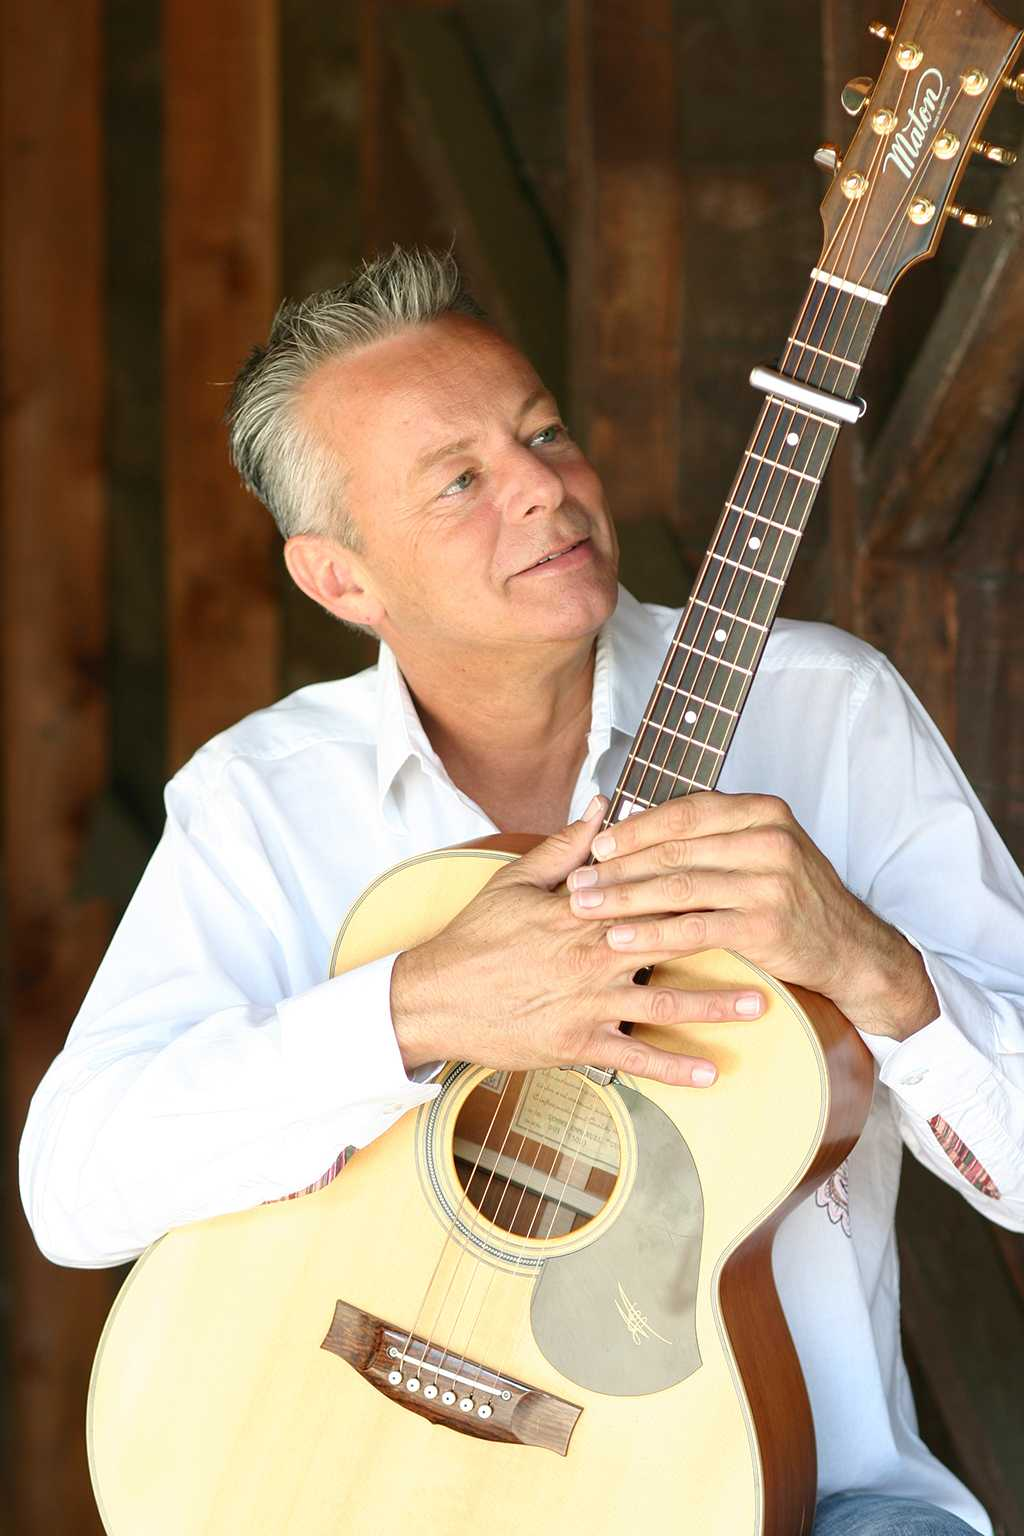 tommy emmanuel plays guitar in lincoln center the rocky mountain collegian. Black Bedroom Furniture Sets. Home Design Ideas